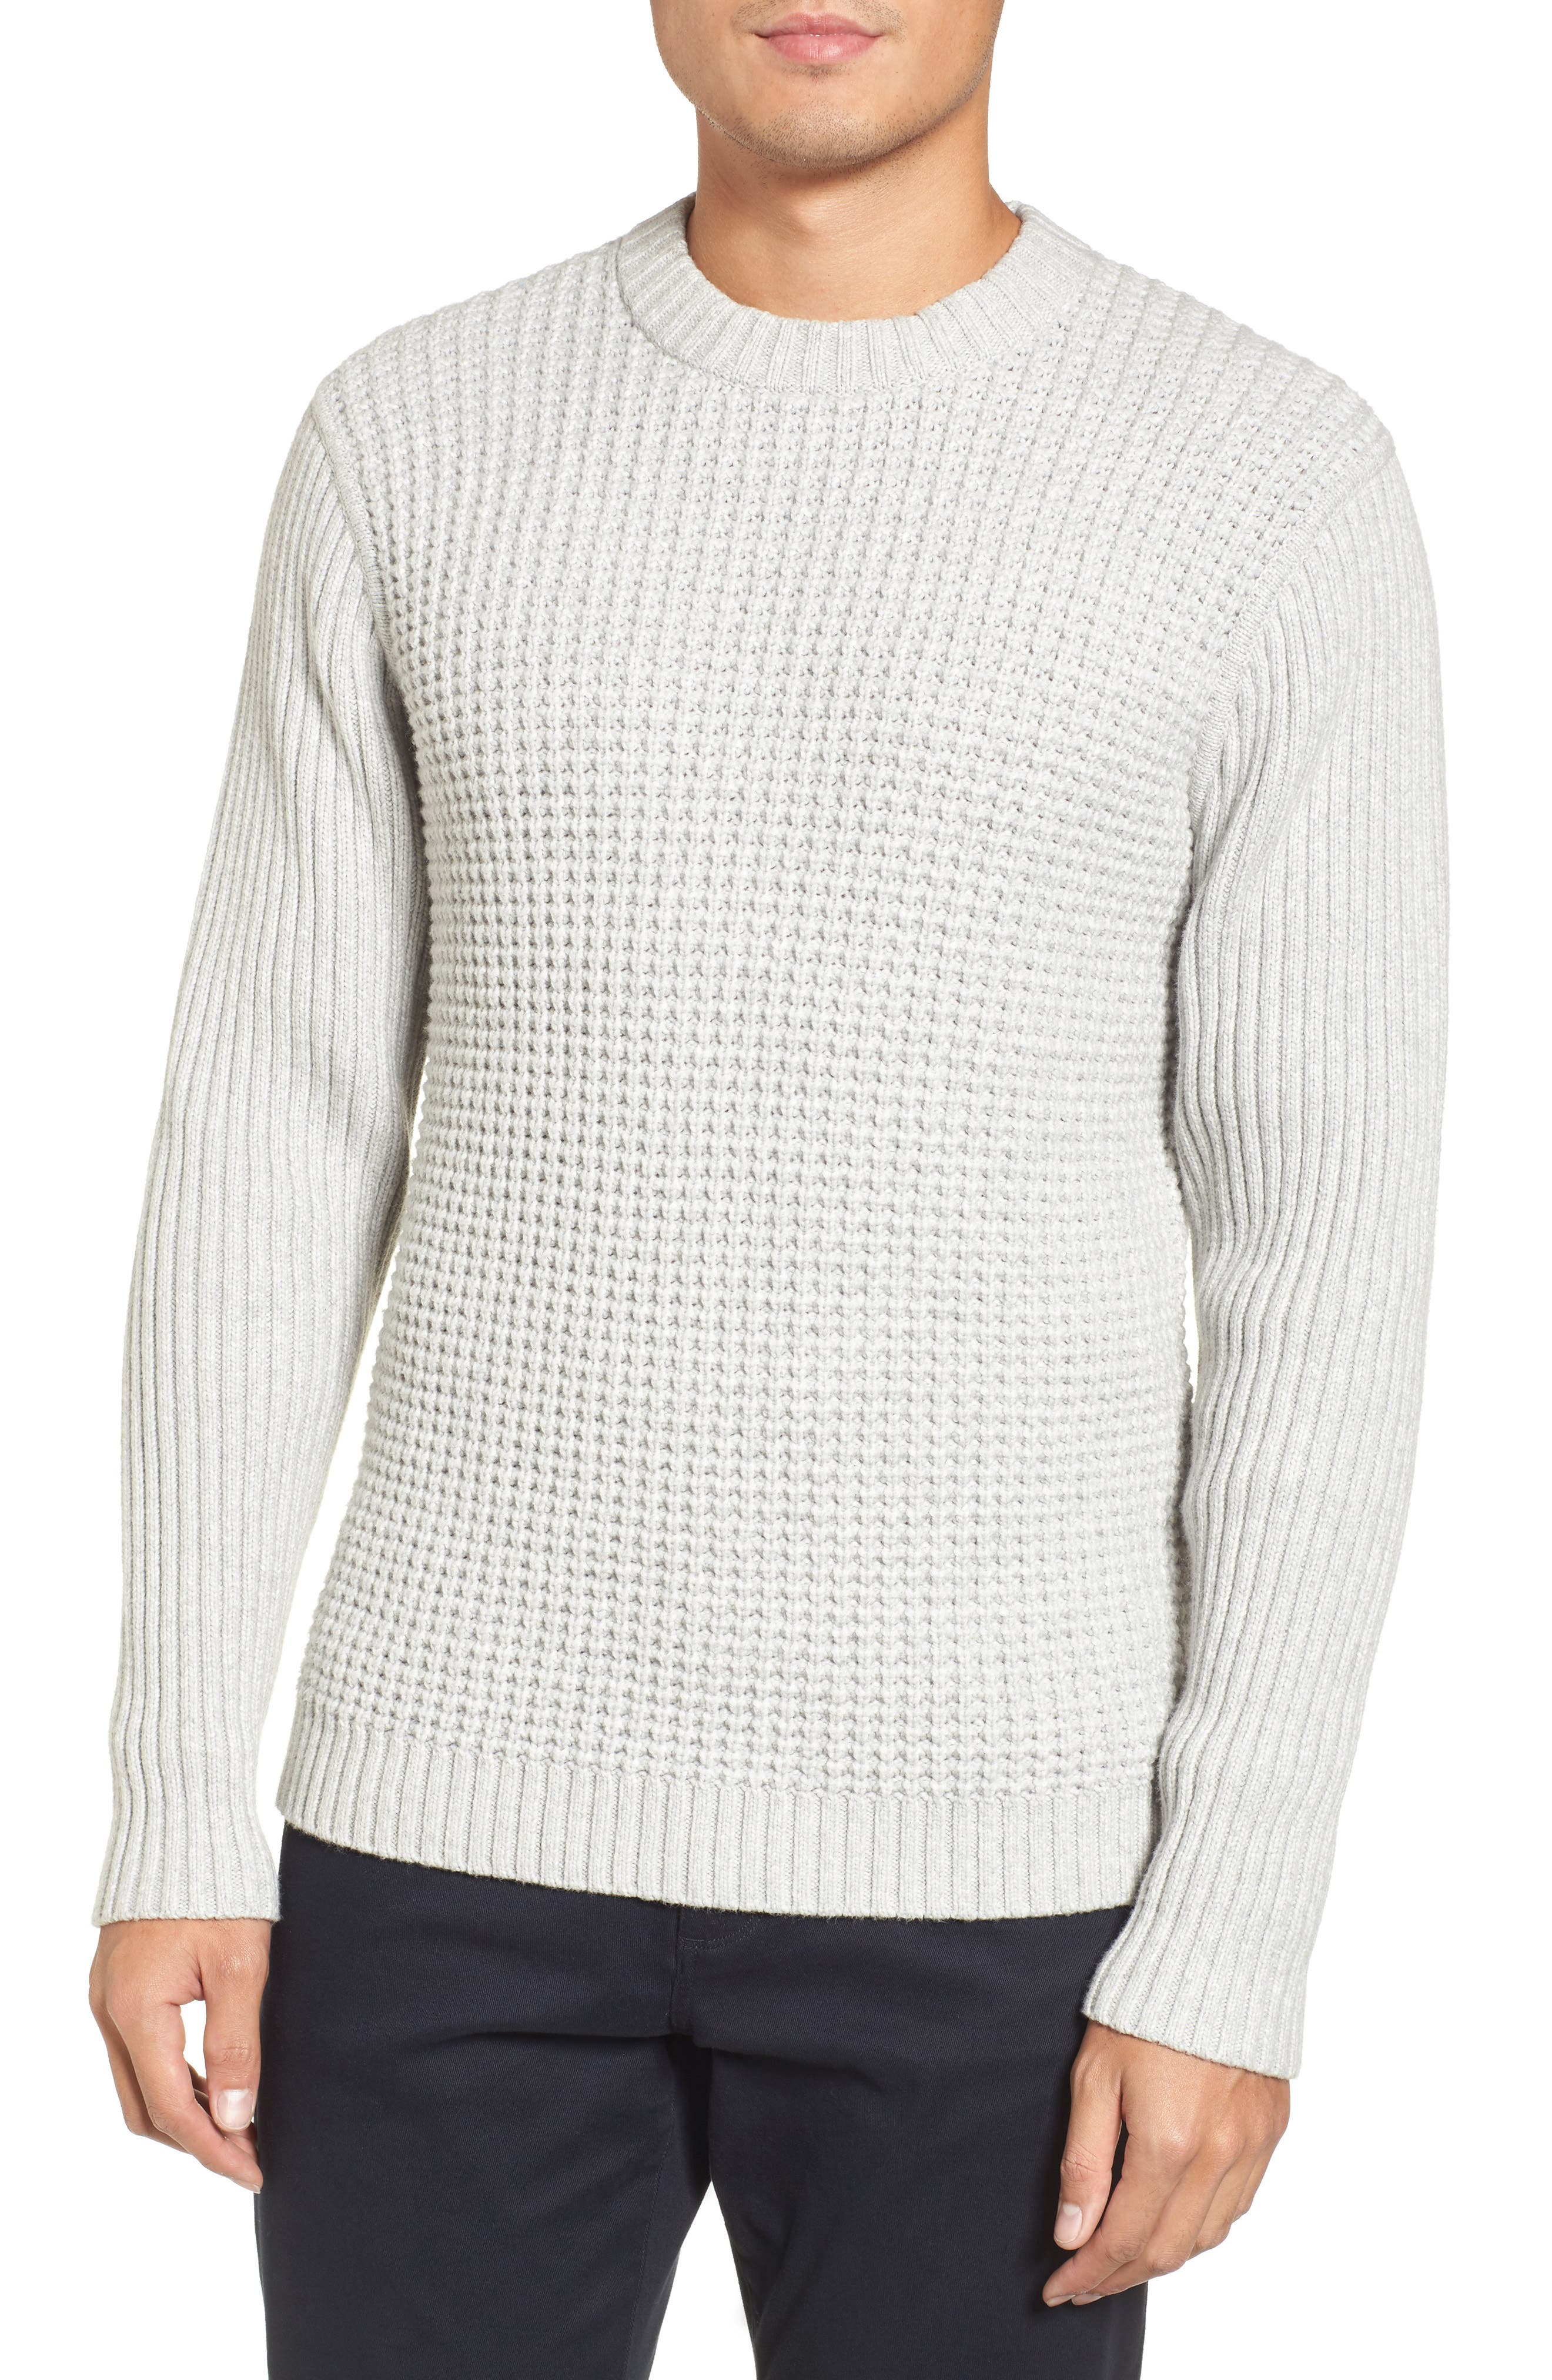 Heavyweight Mixed Knit Crewneck Sweater,                             Main thumbnail 1, color,                             050